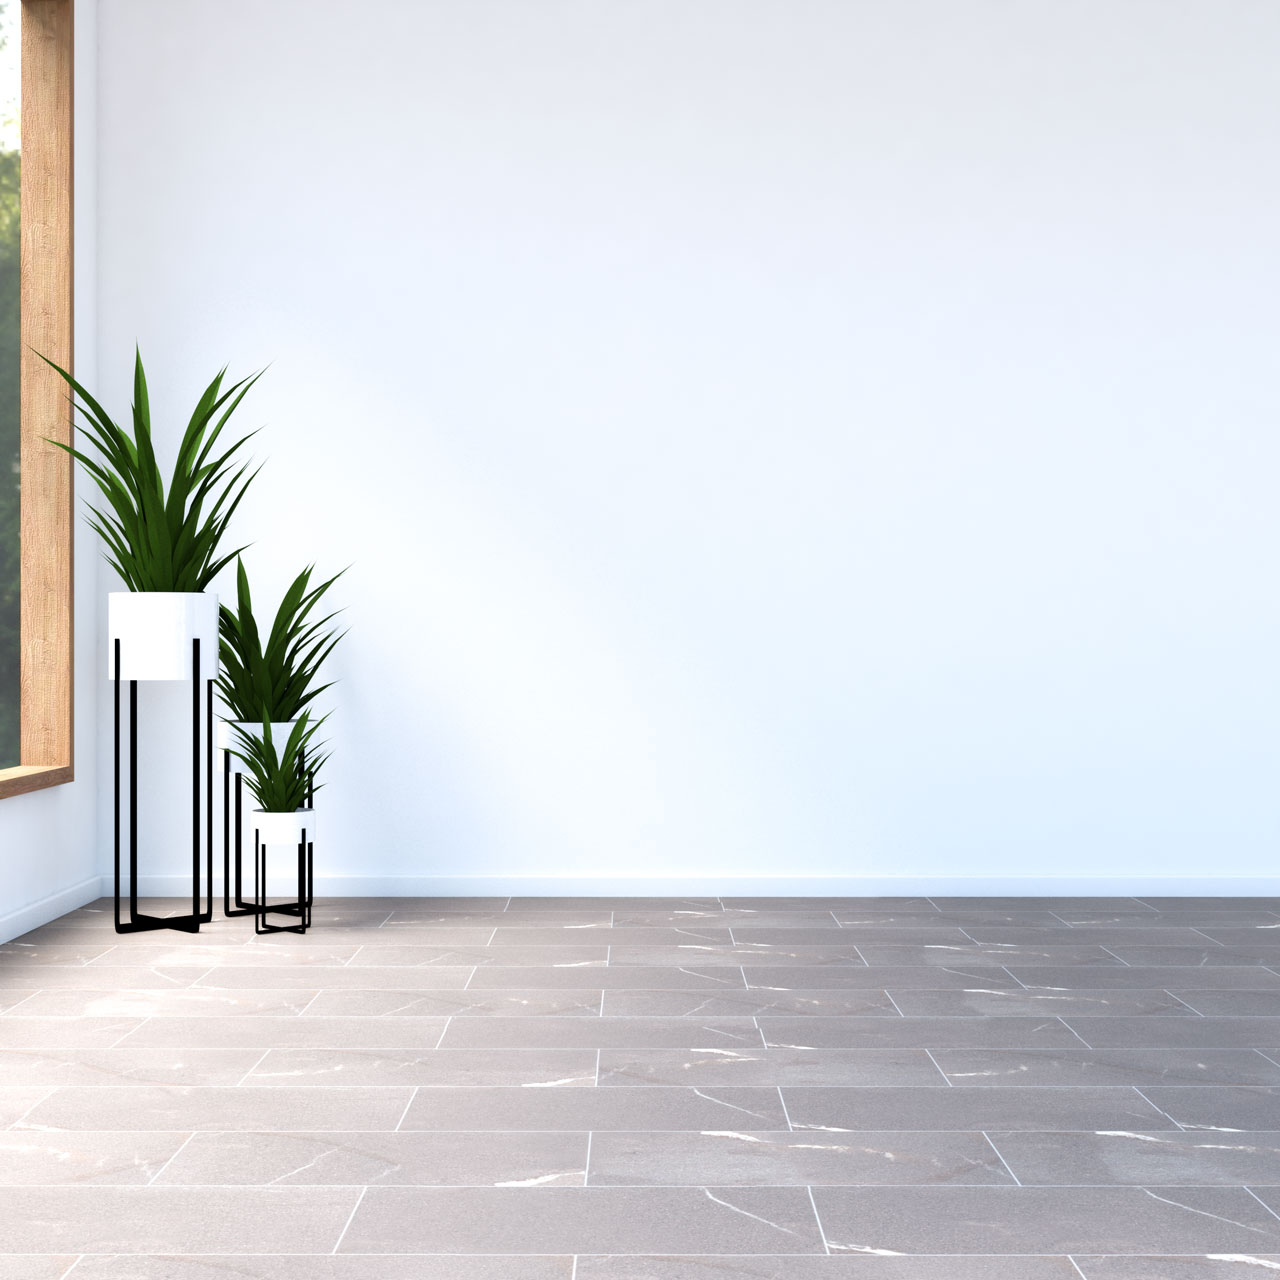 White walls with light brown tile floors